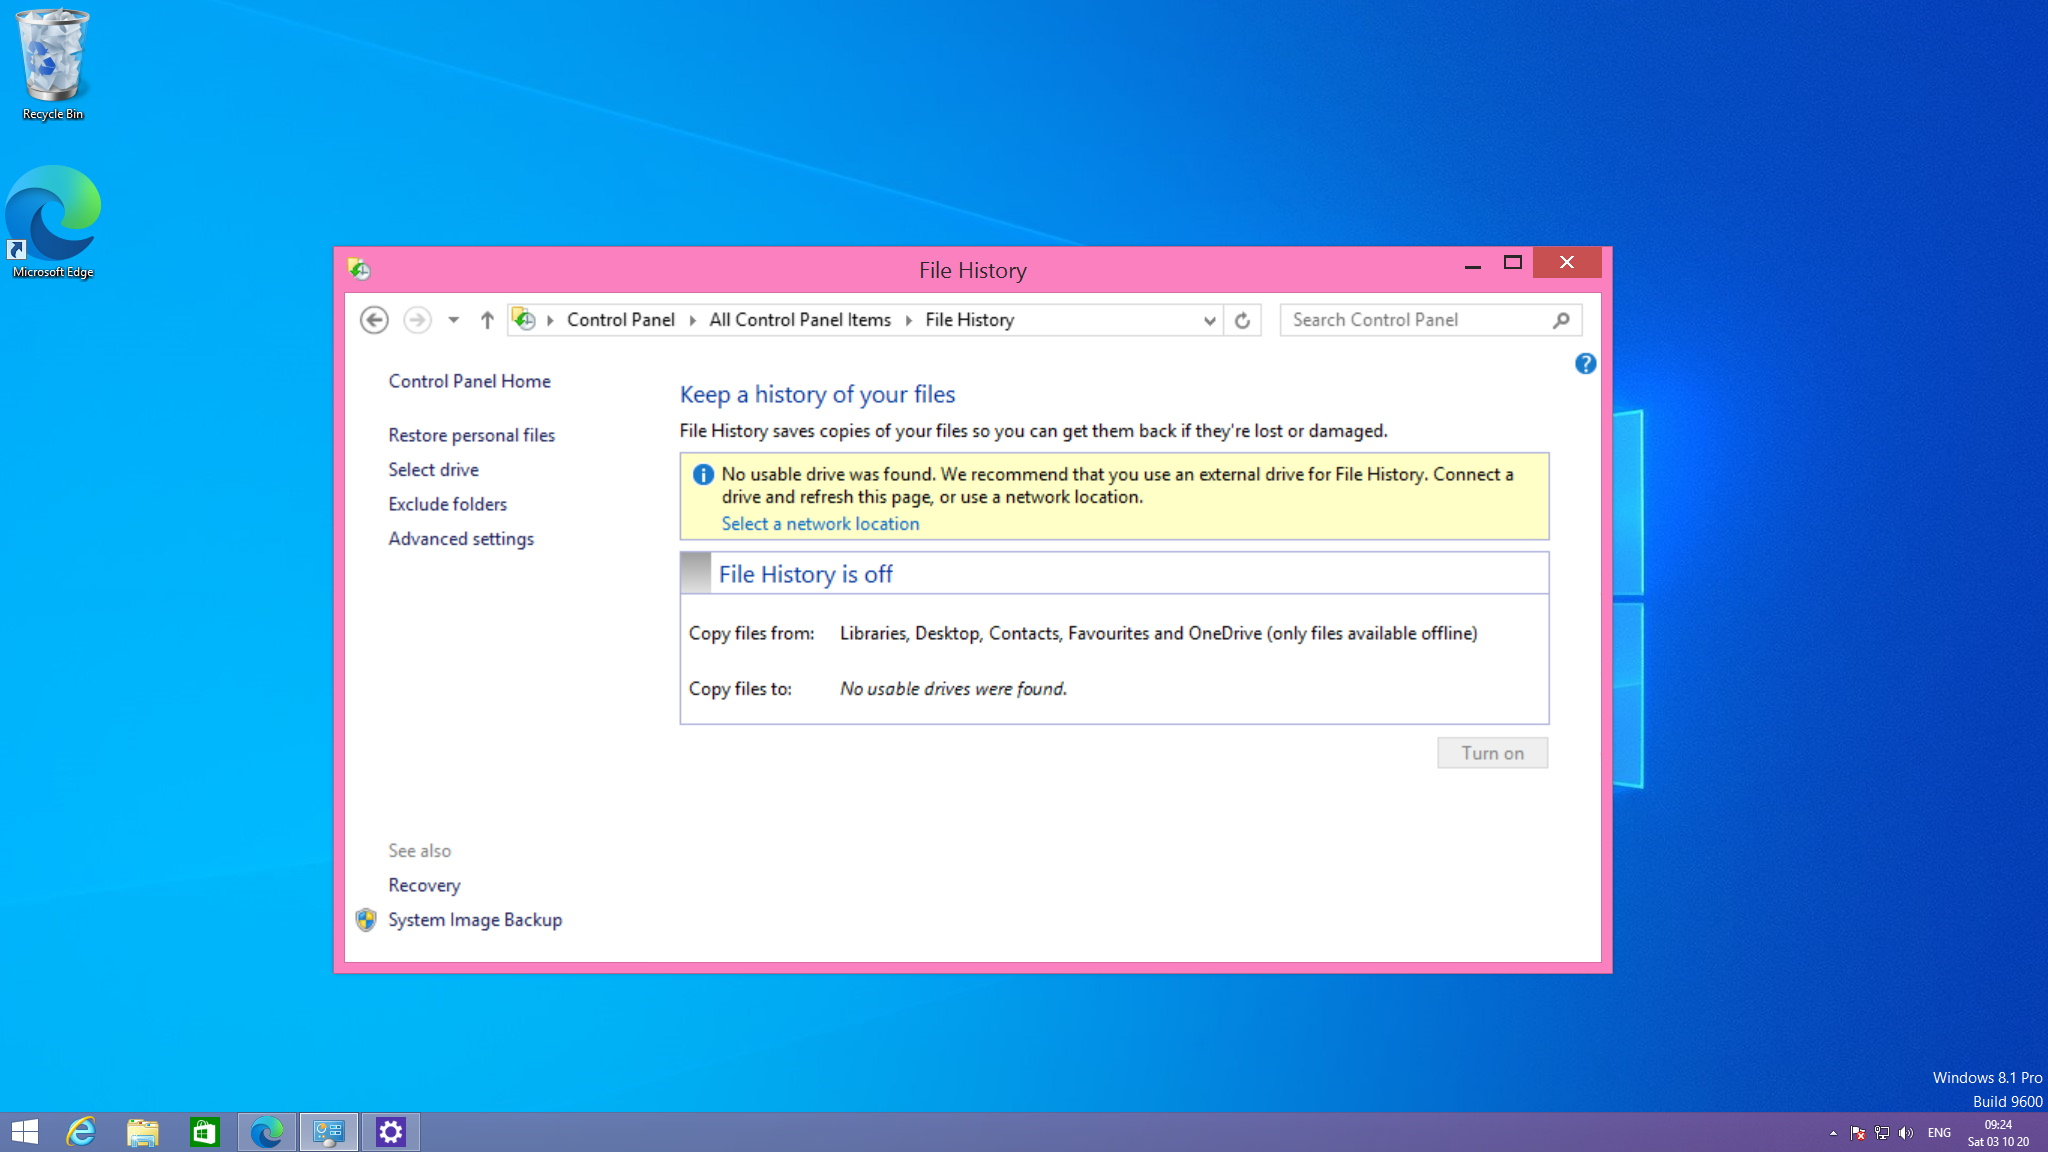 Recover deleted files on Windows 8 using File History option